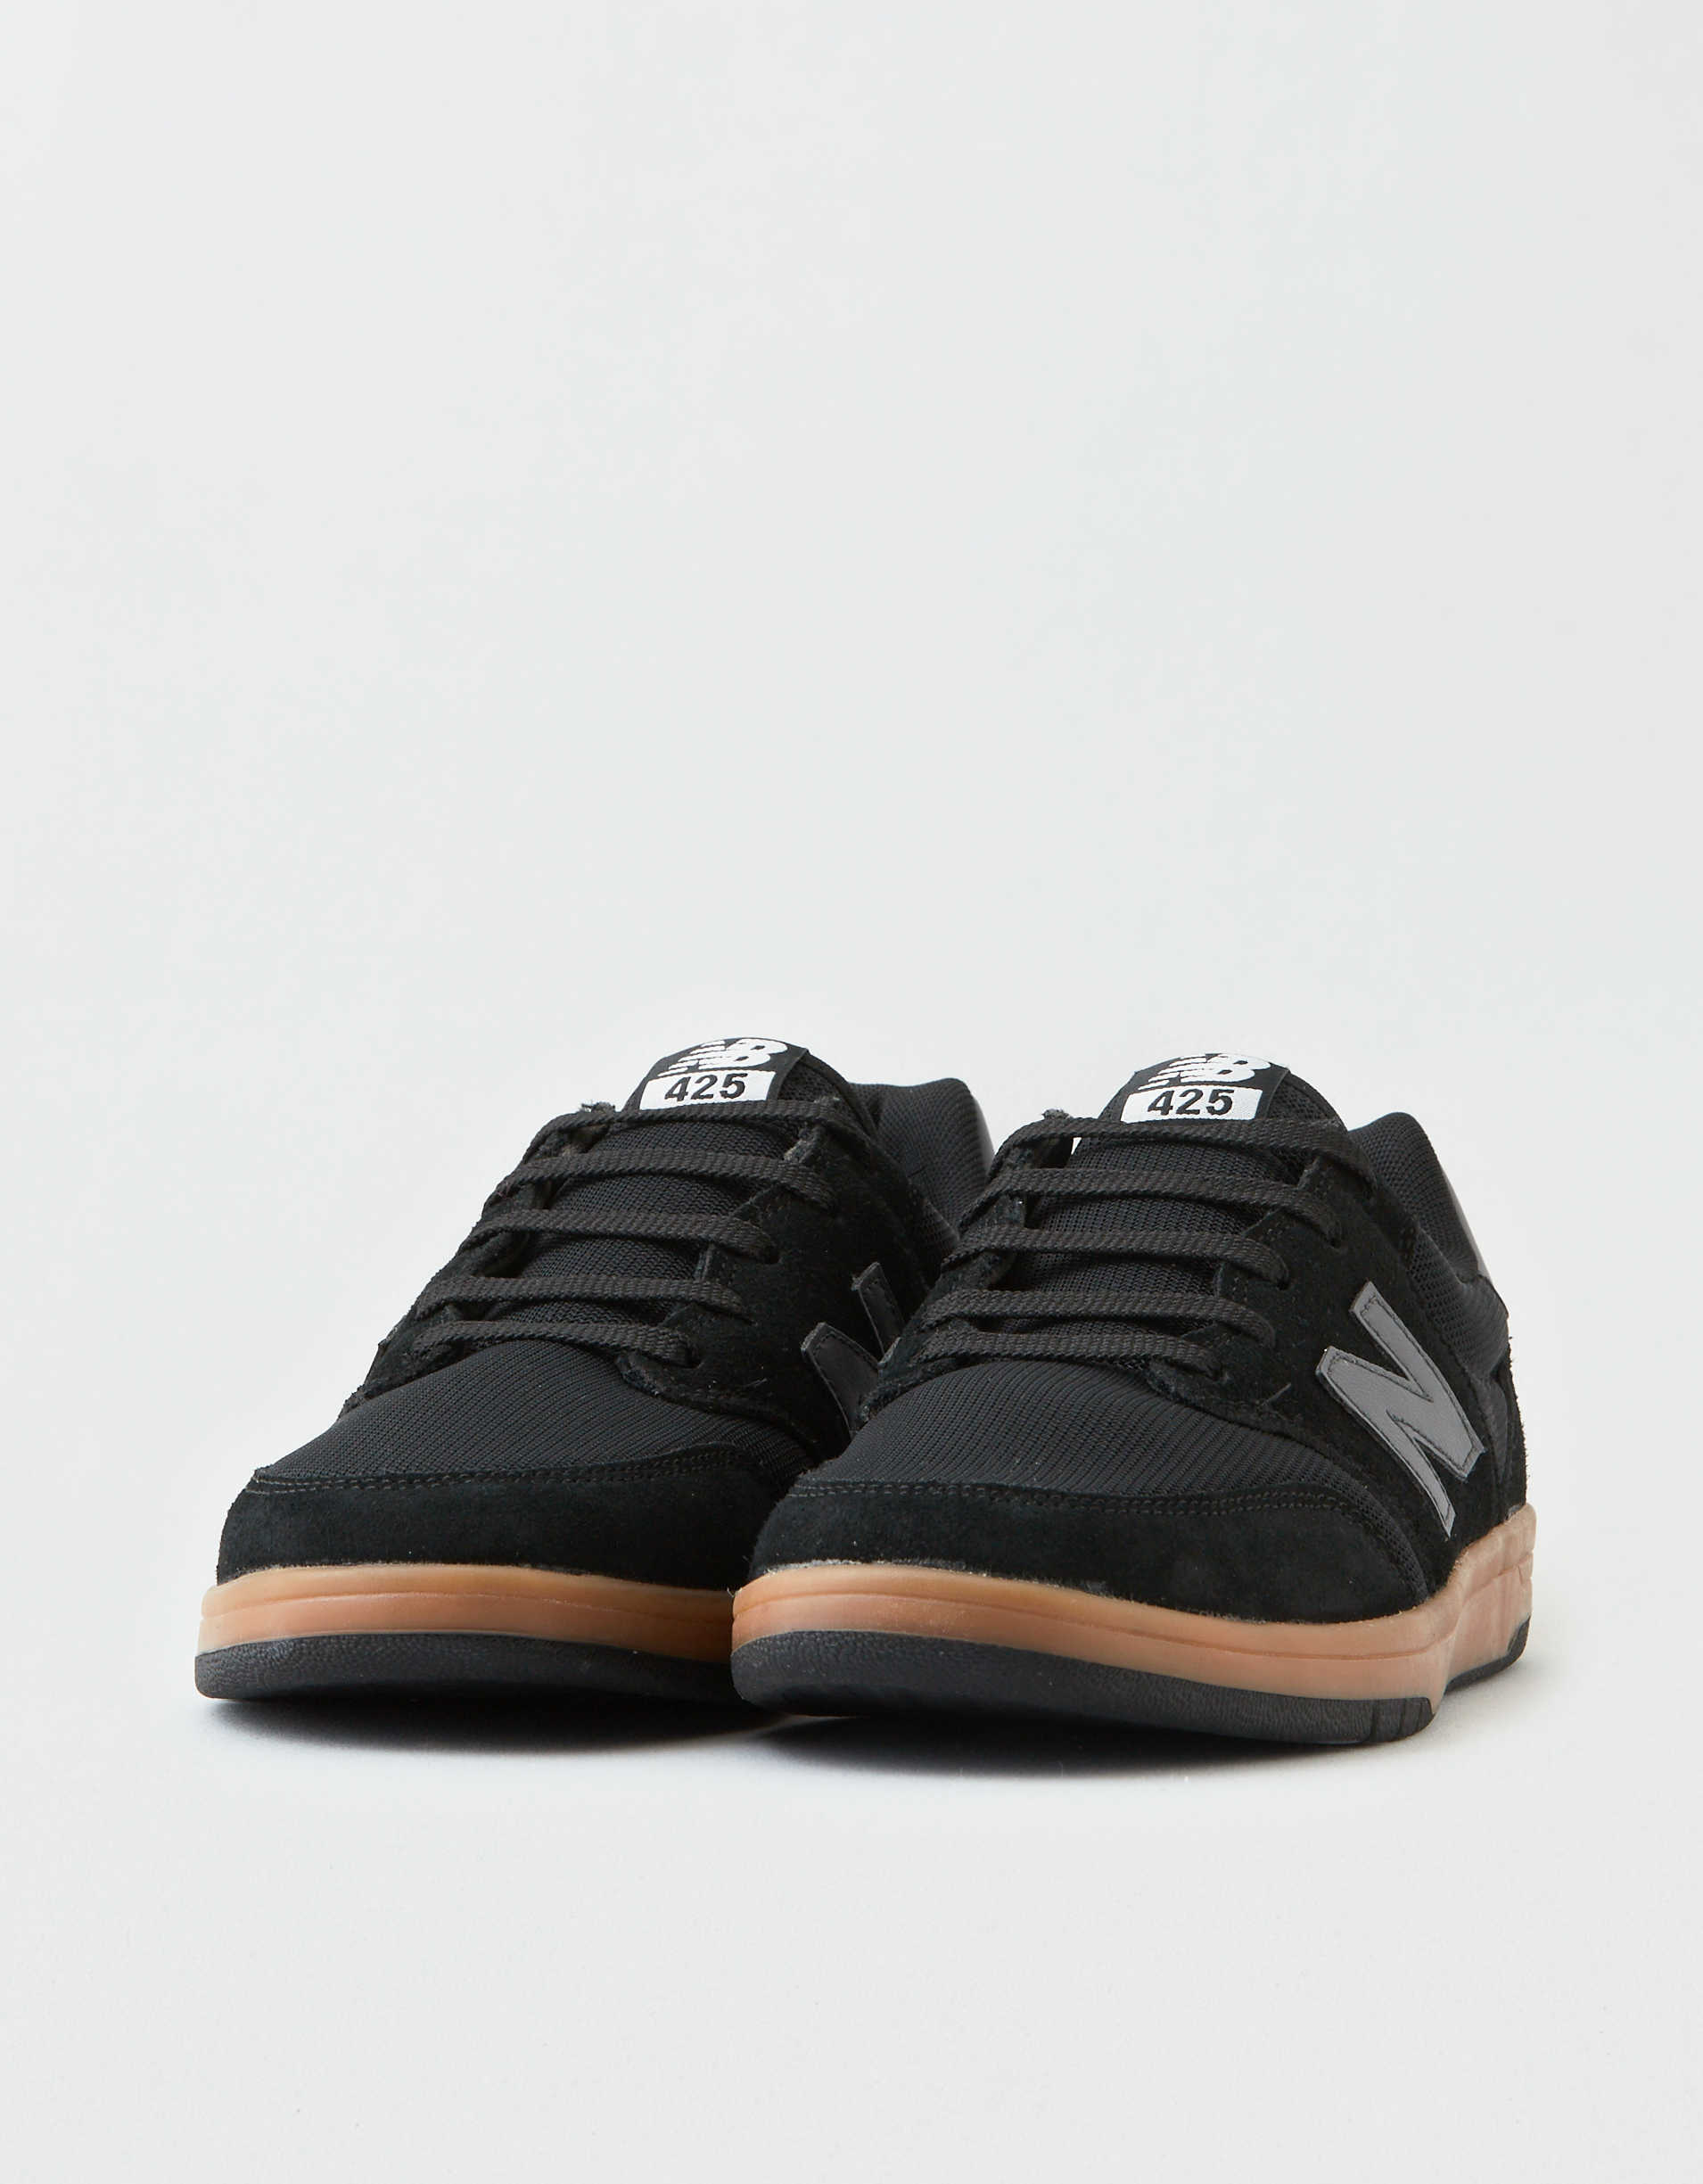 New Balance All Coasts 425 Sneaker